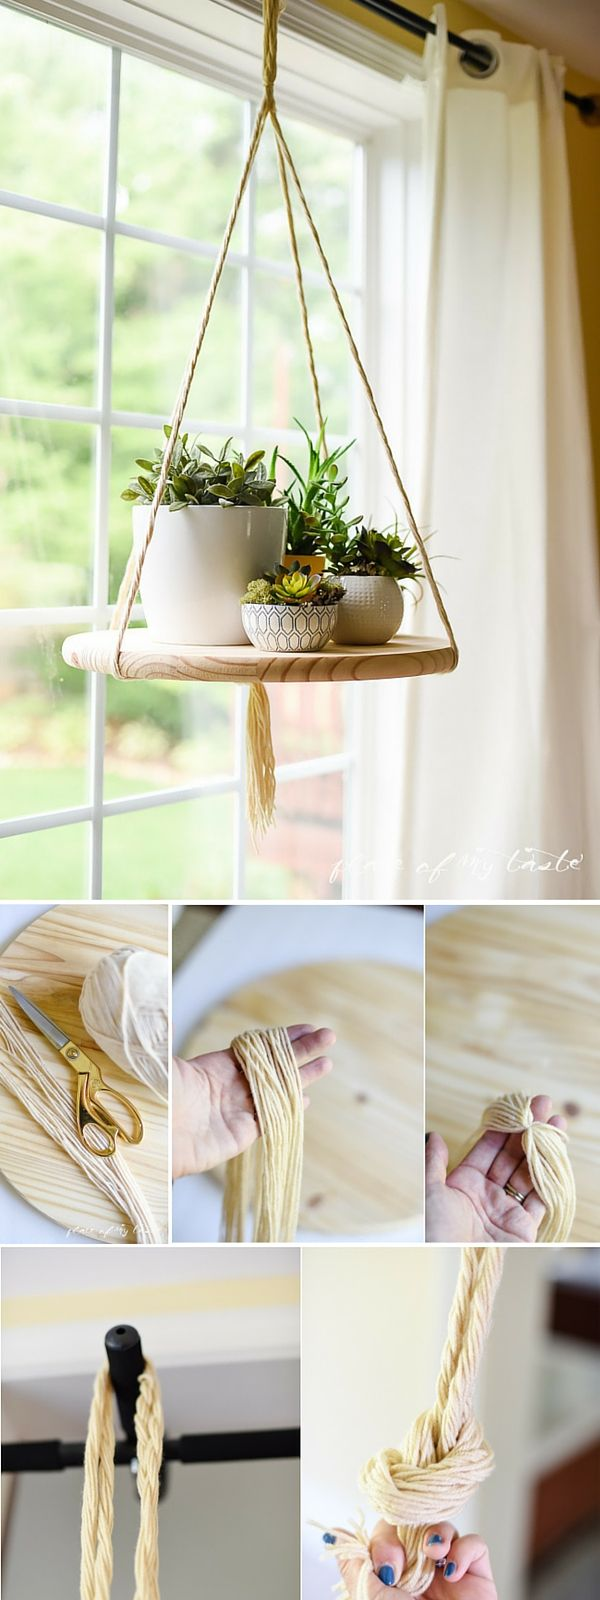 DIY floating shelf! Oh, my..this is an amazing and very simple project! And fun home decor piece as well!